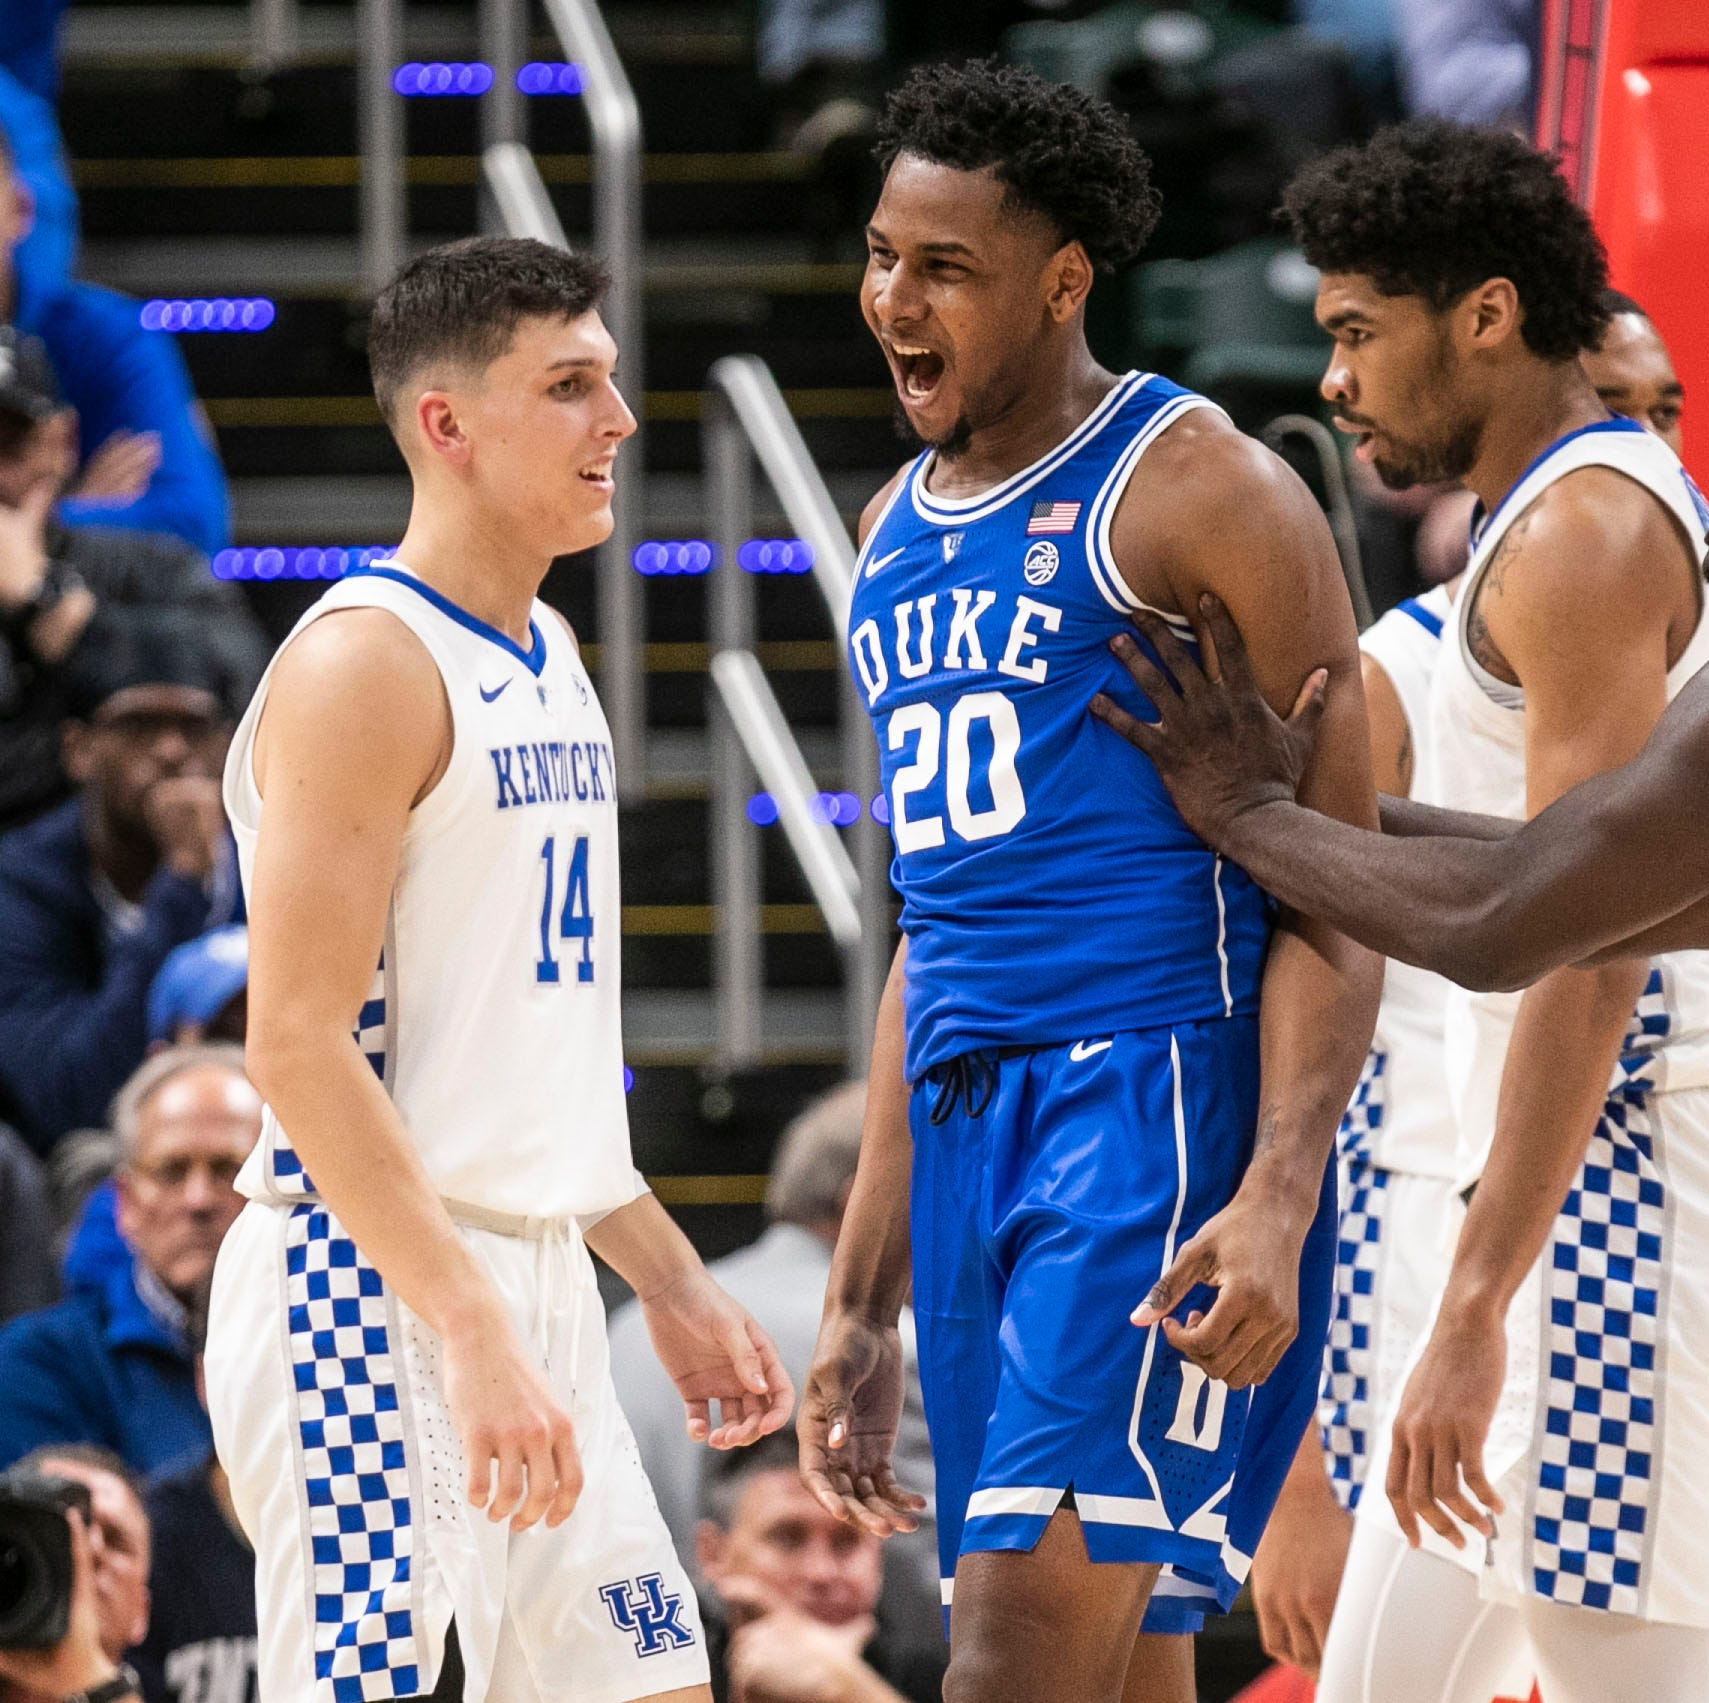 What we learned from Duke's dominance of Kentucky in Champions Classic